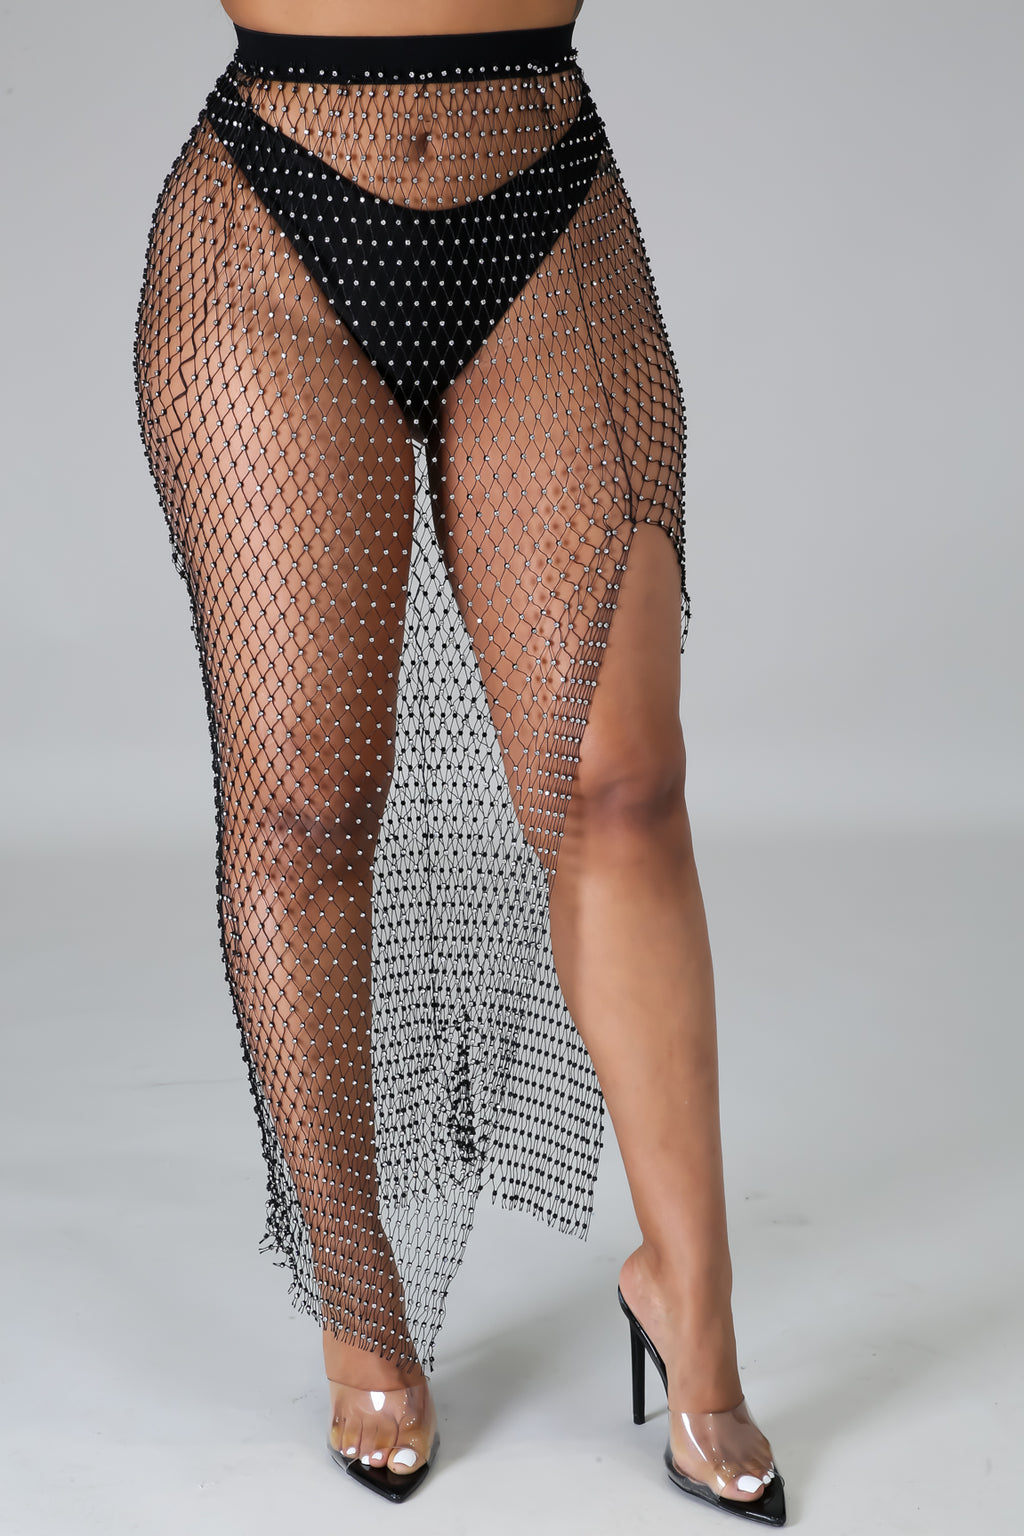 Diamond Skirt Net Cover Up